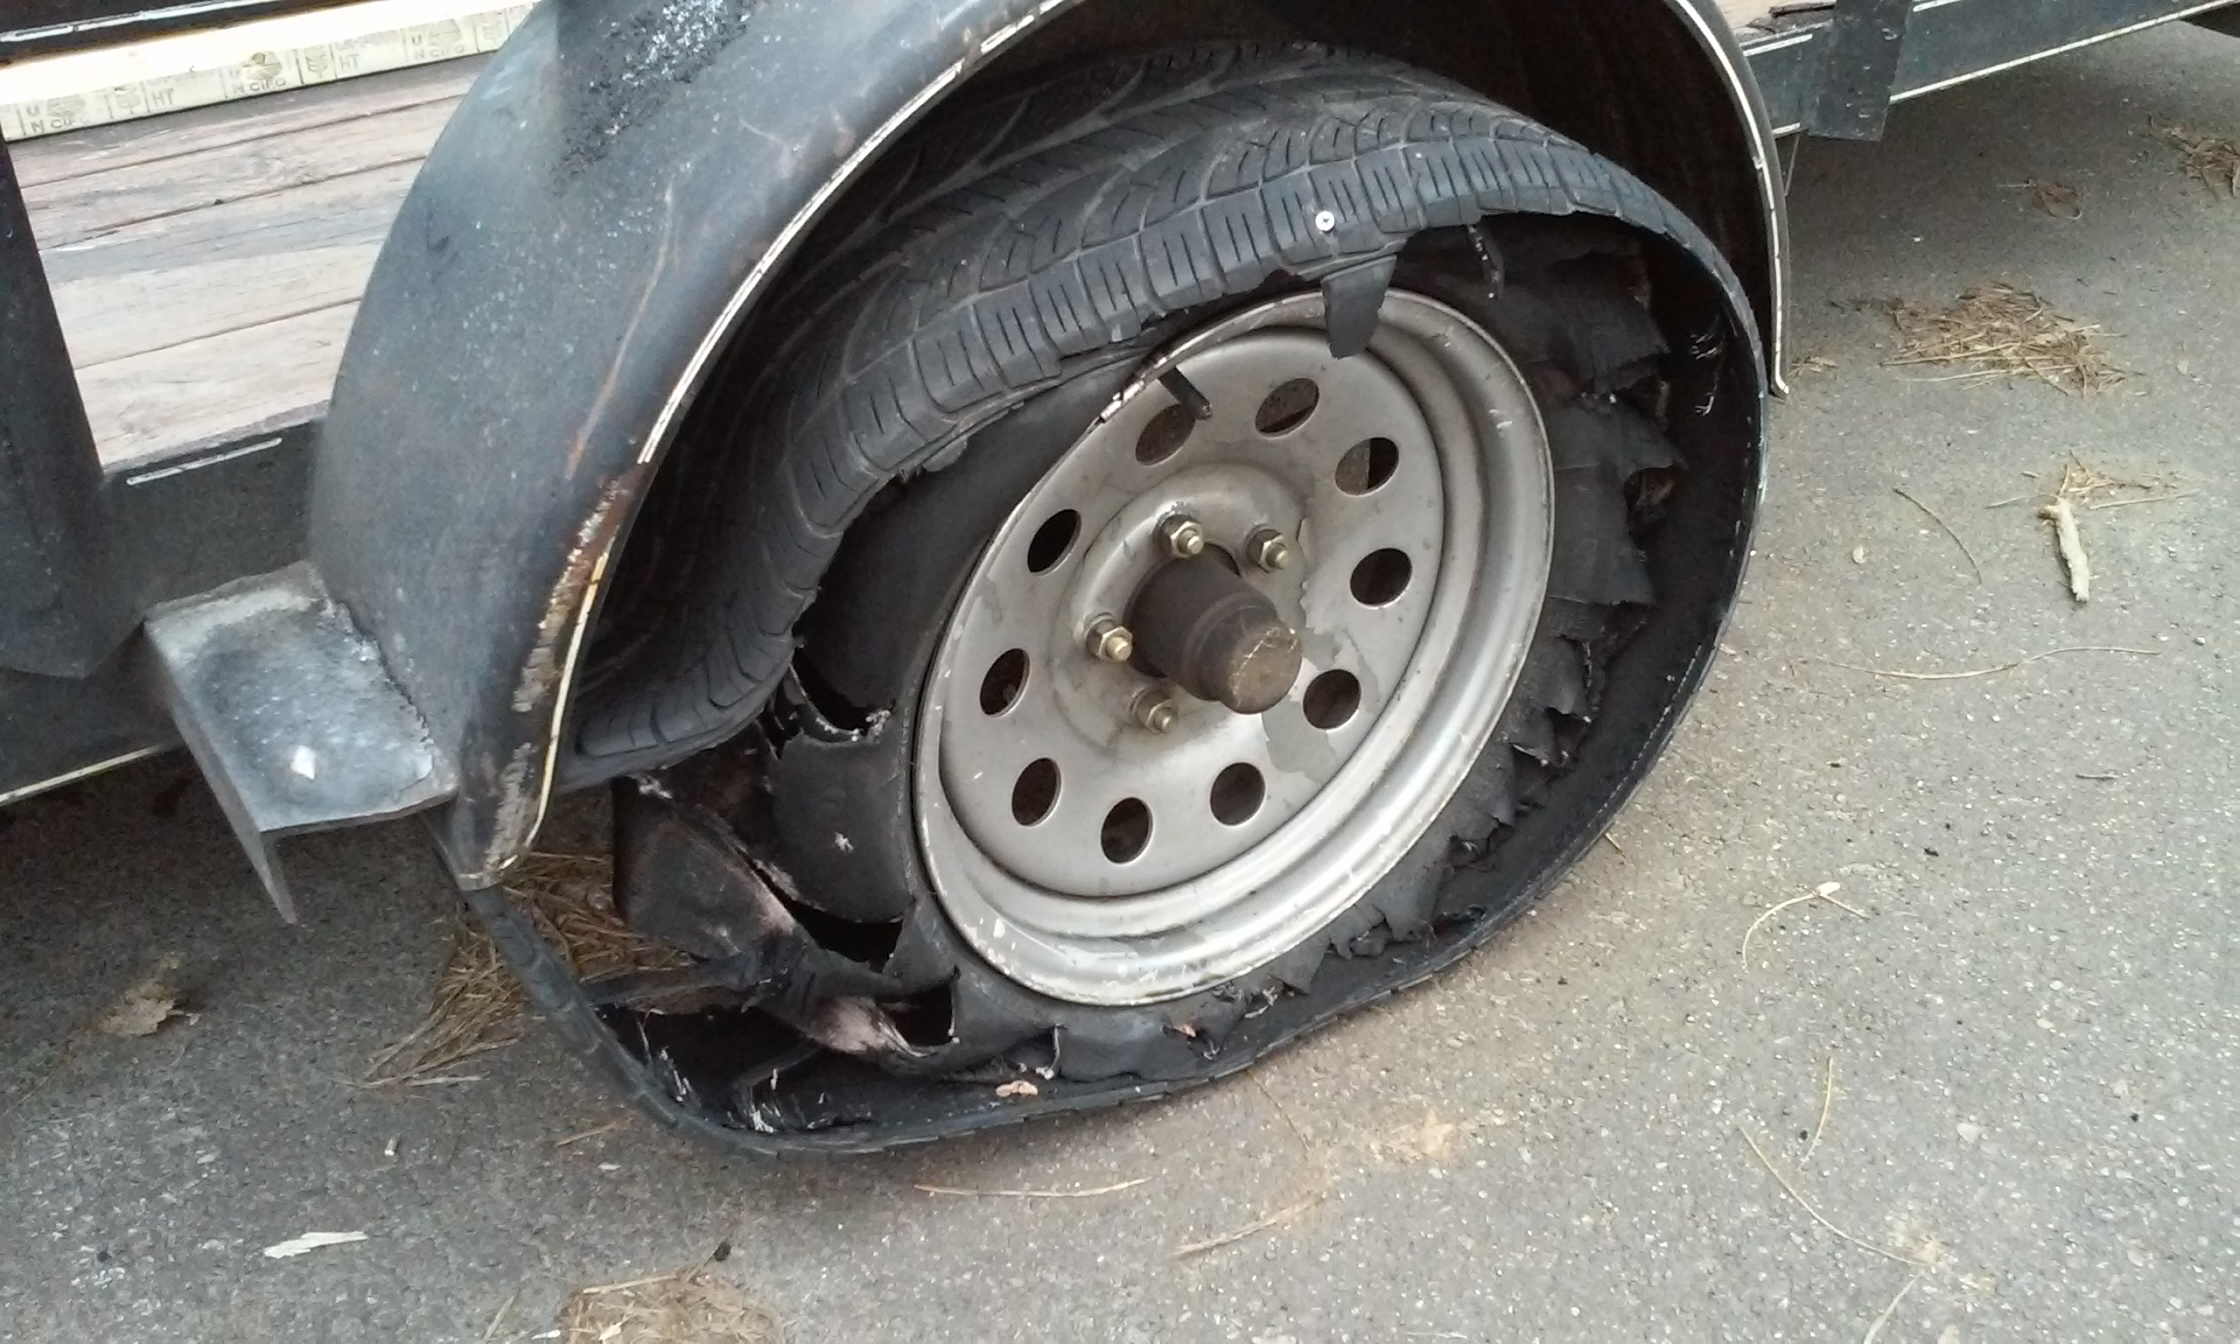 Photos | New Invention: The Detroit Safety Tire